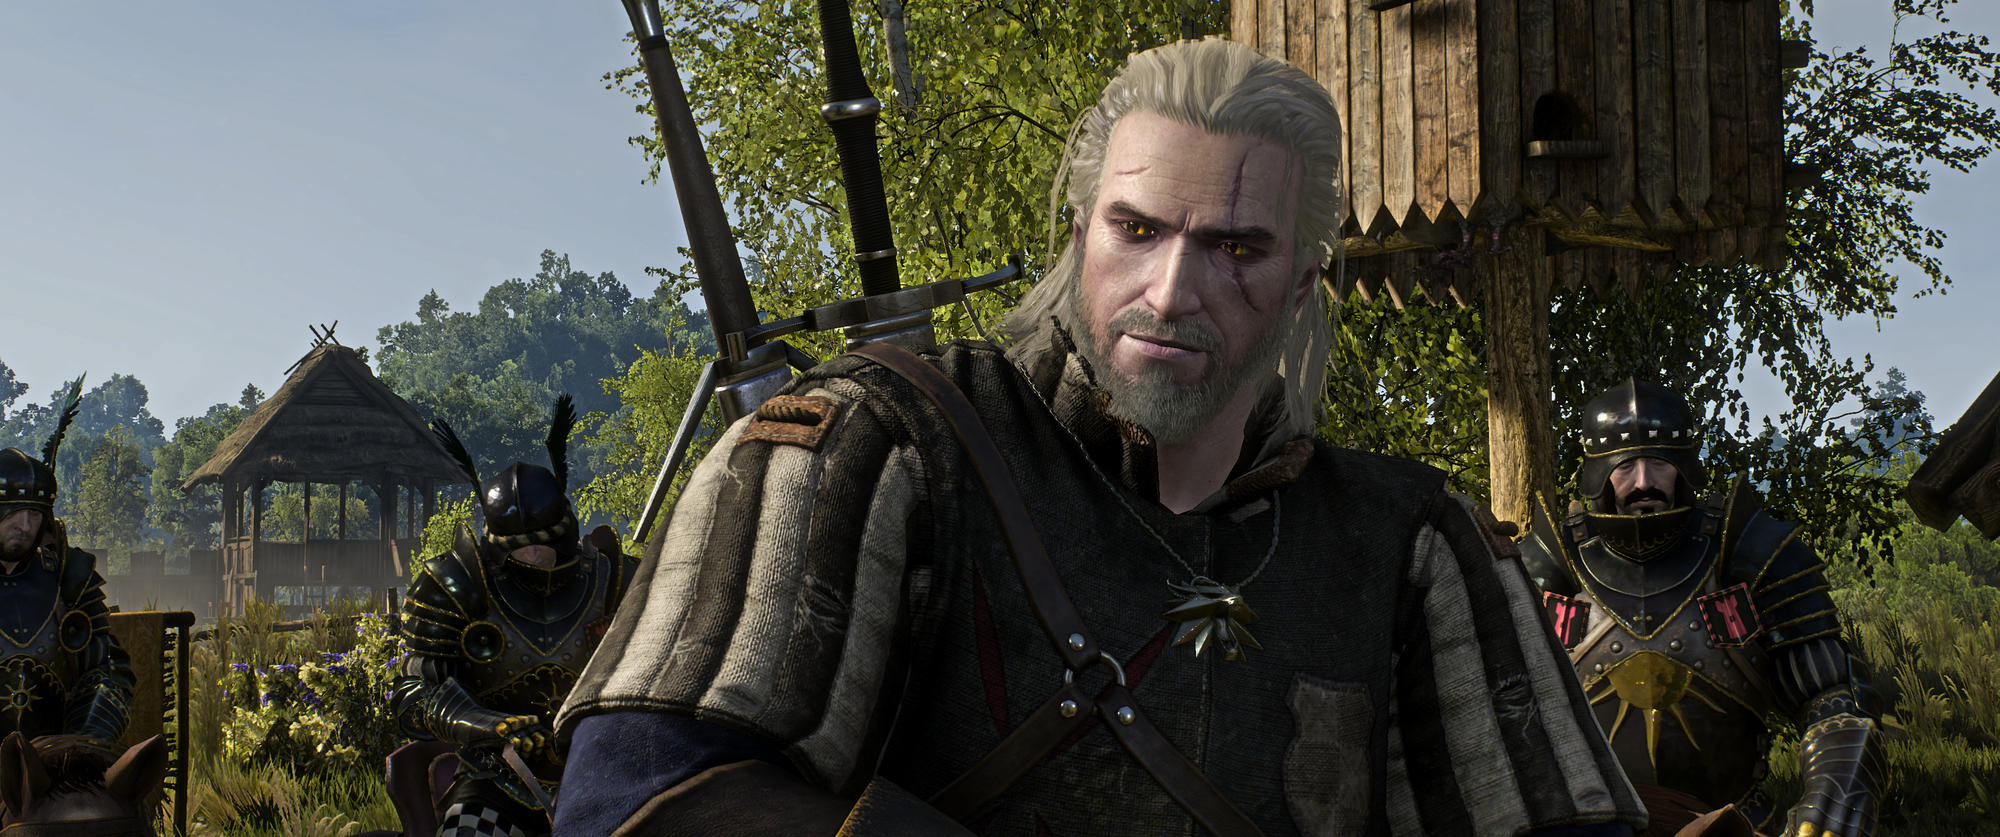 The Witcher 3 Screenshot 2019.01.02 - 22.49.24.19.png